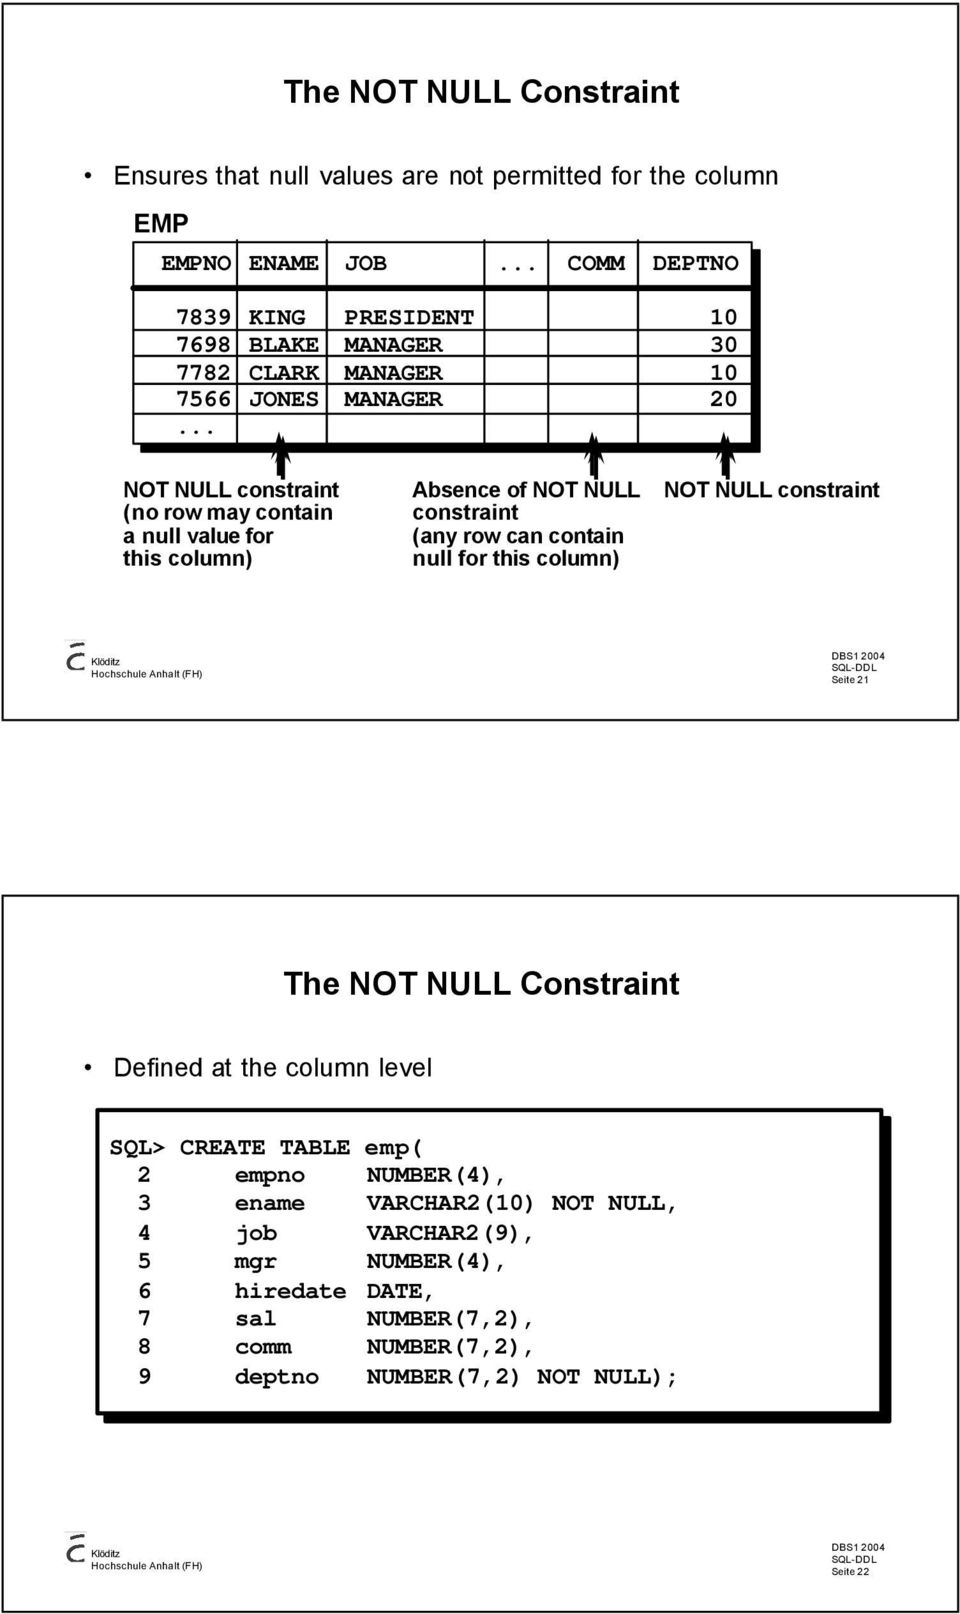 .. NOT NULL constraint (norow may contain a null value for this column) Absence of NOT NULL constraint (any row can contain null for this column) NOT NULL